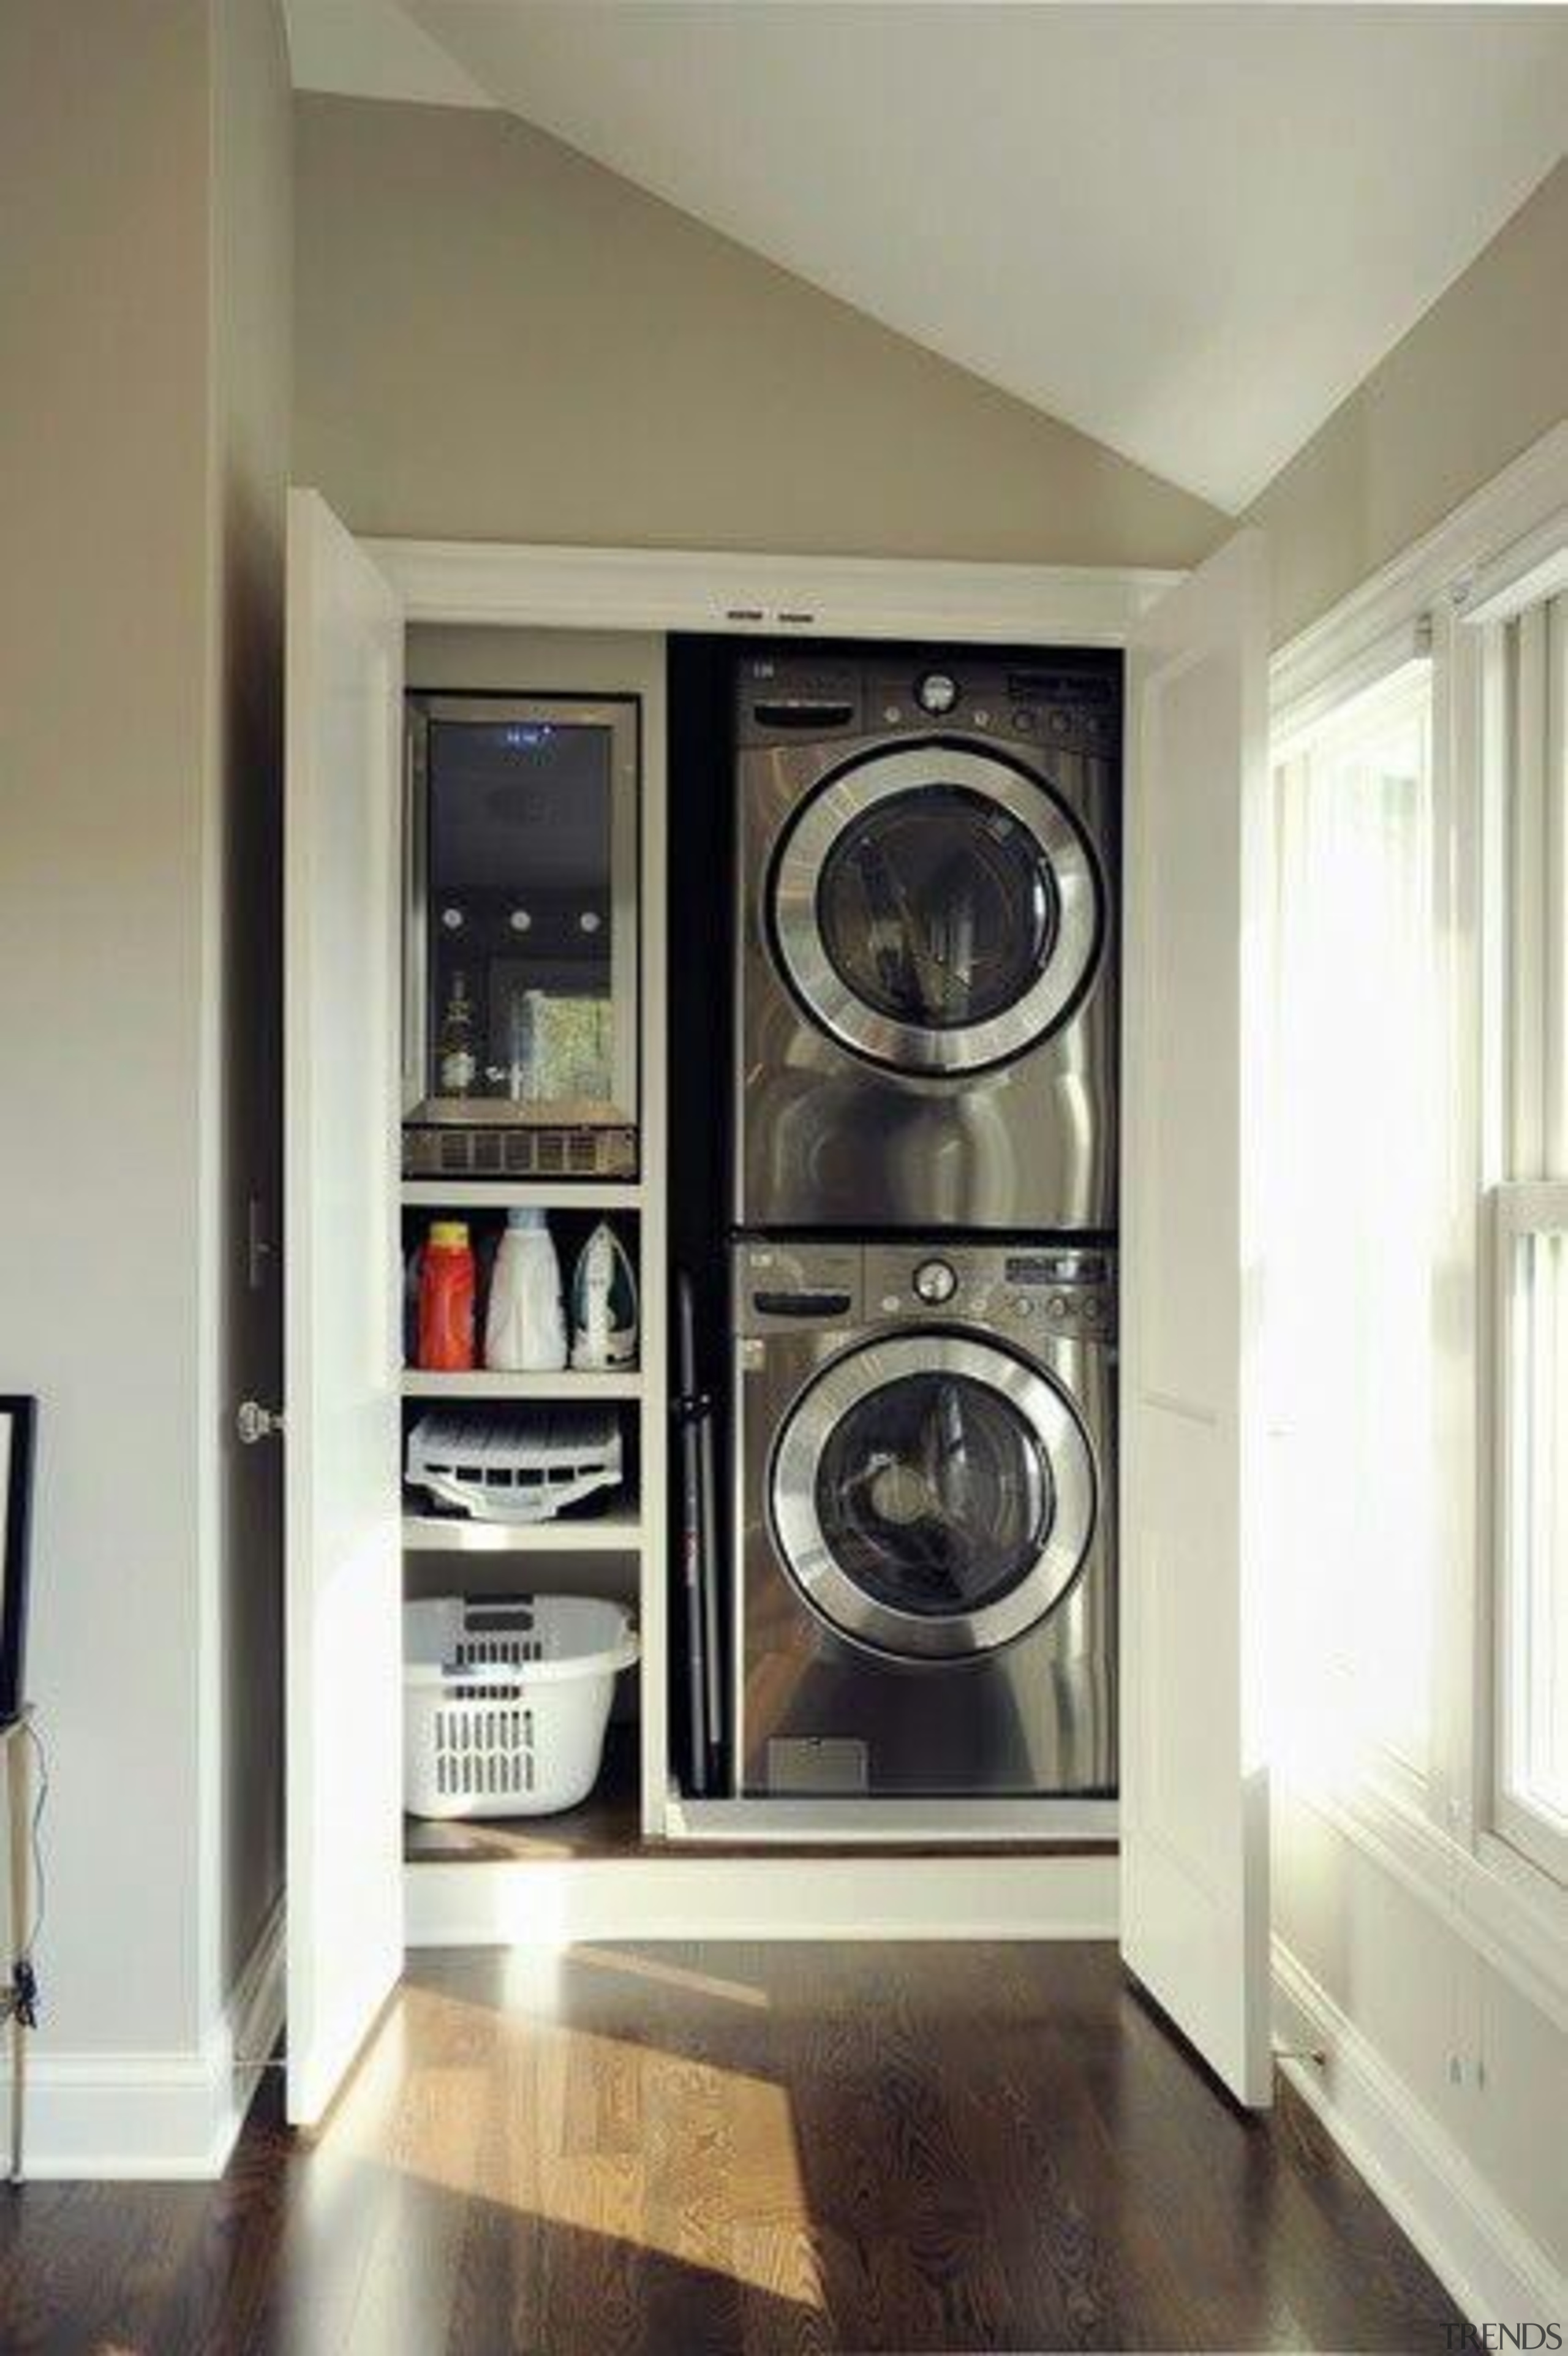 Utilitarian spaces such as laundry rooms and mudrooms home appliance, laundry, laundry room, major appliance, room, washing machine, white